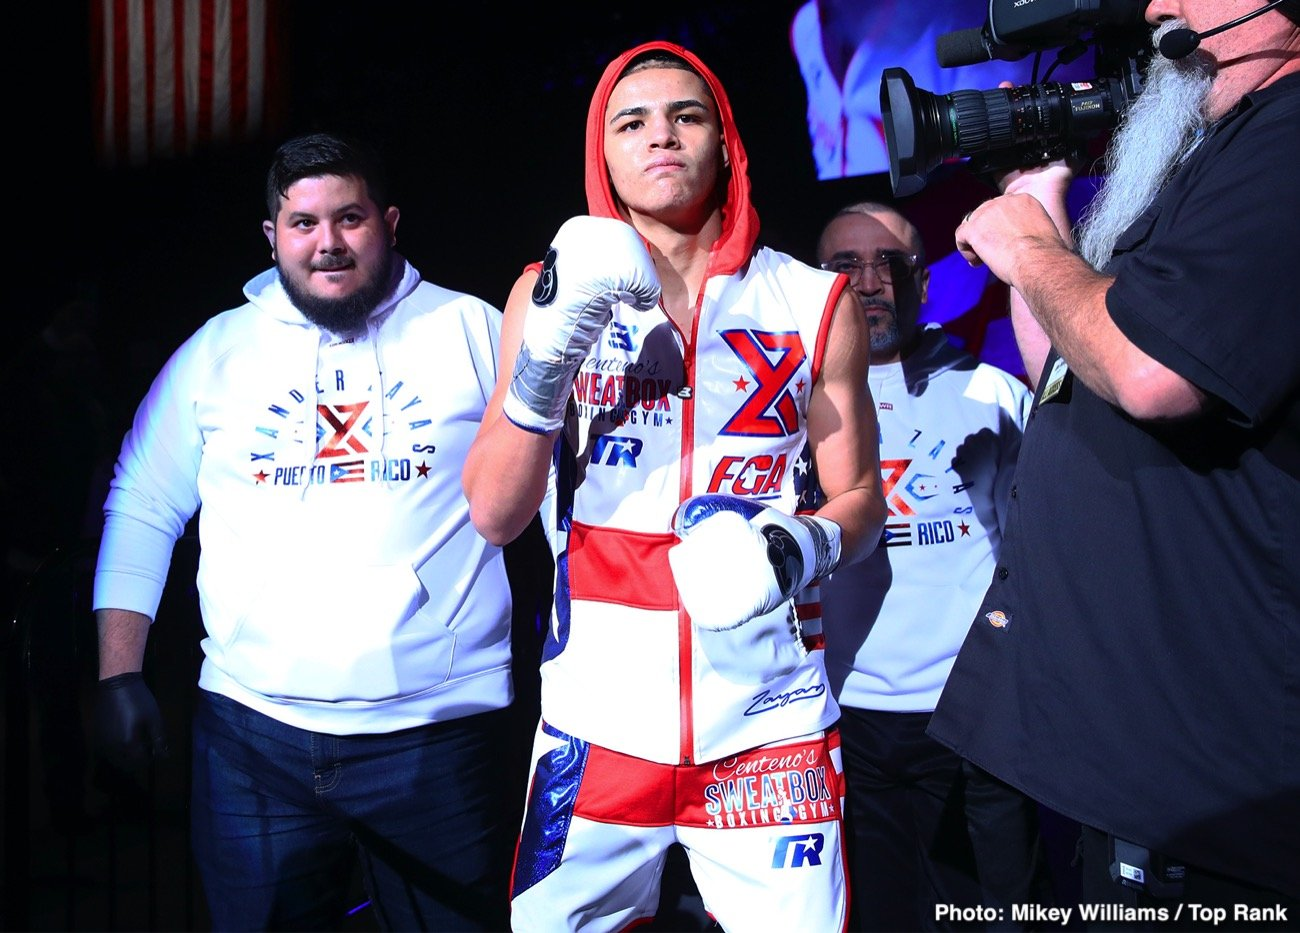 """The 17-year-old Puerto Rican prospect Xánder Zayas is already in Puerto Rico and trained this afternoon in this city en route to his debut on the island this Friday i """"A Puño Limpio"""" which will be held at the Rubén Zayas Montañez Coliseum in Trujillo Alto, in a presentation of PR Best Boxing Promotions (PRBBP) in association with Spartan Boxing and Top Rank, which will be broadcast live on www.facebook.com/PRBestBoxing."""